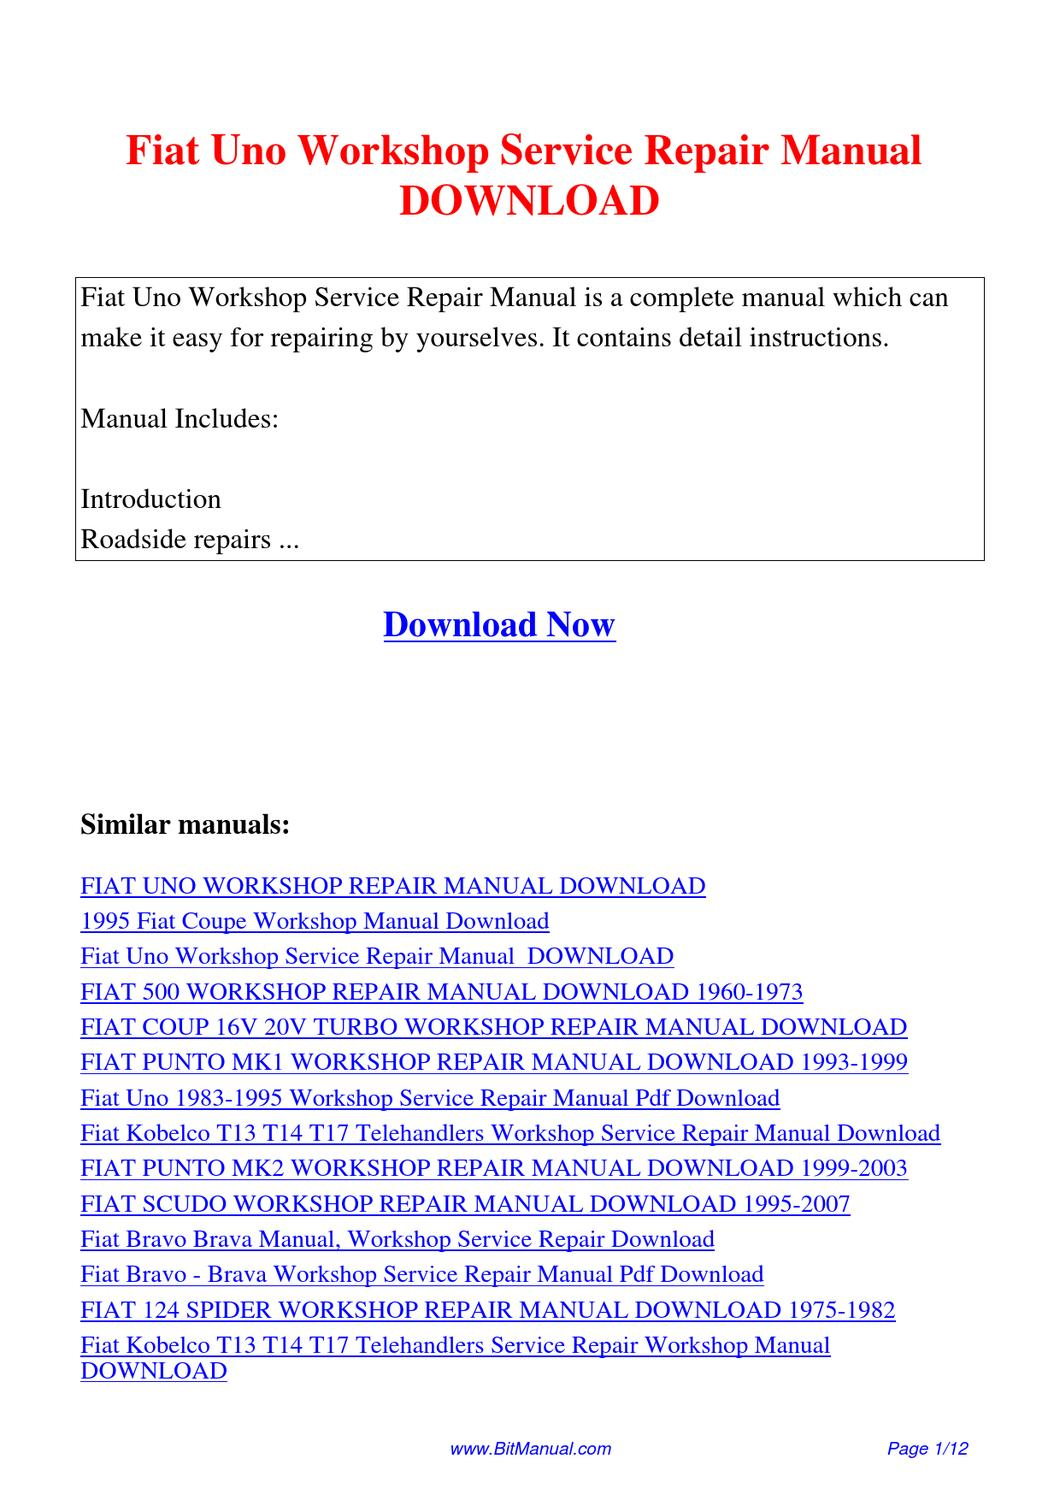 Fiat Uno Workshop Service Repair Manual By Lisa Fu